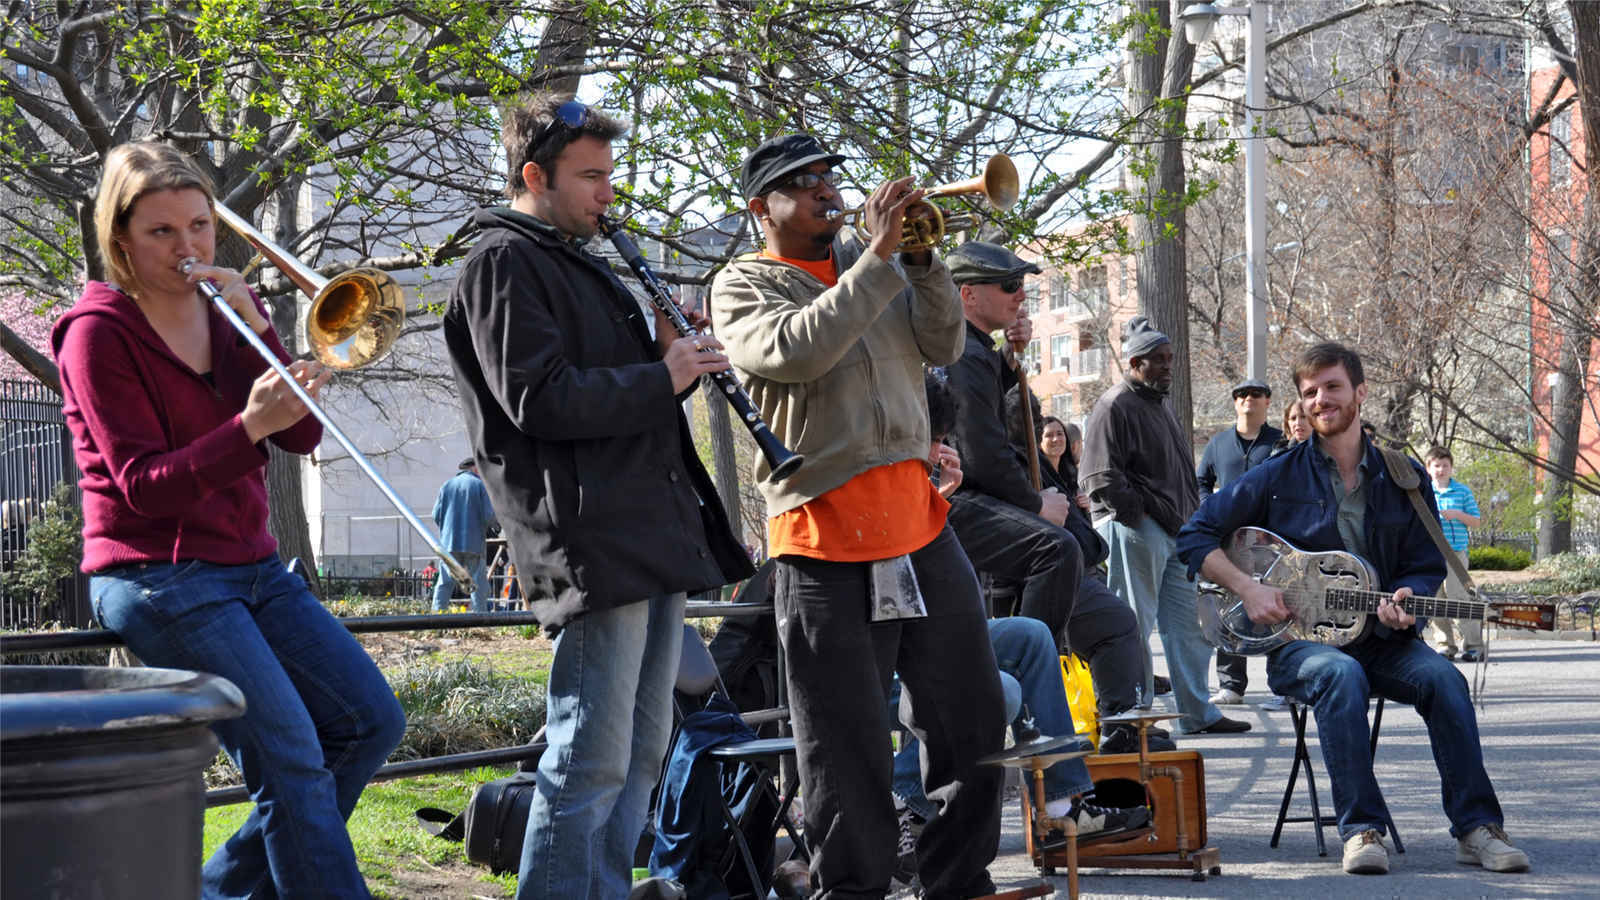 Street musicians, Washington Square Park, Greenwich Village, New York